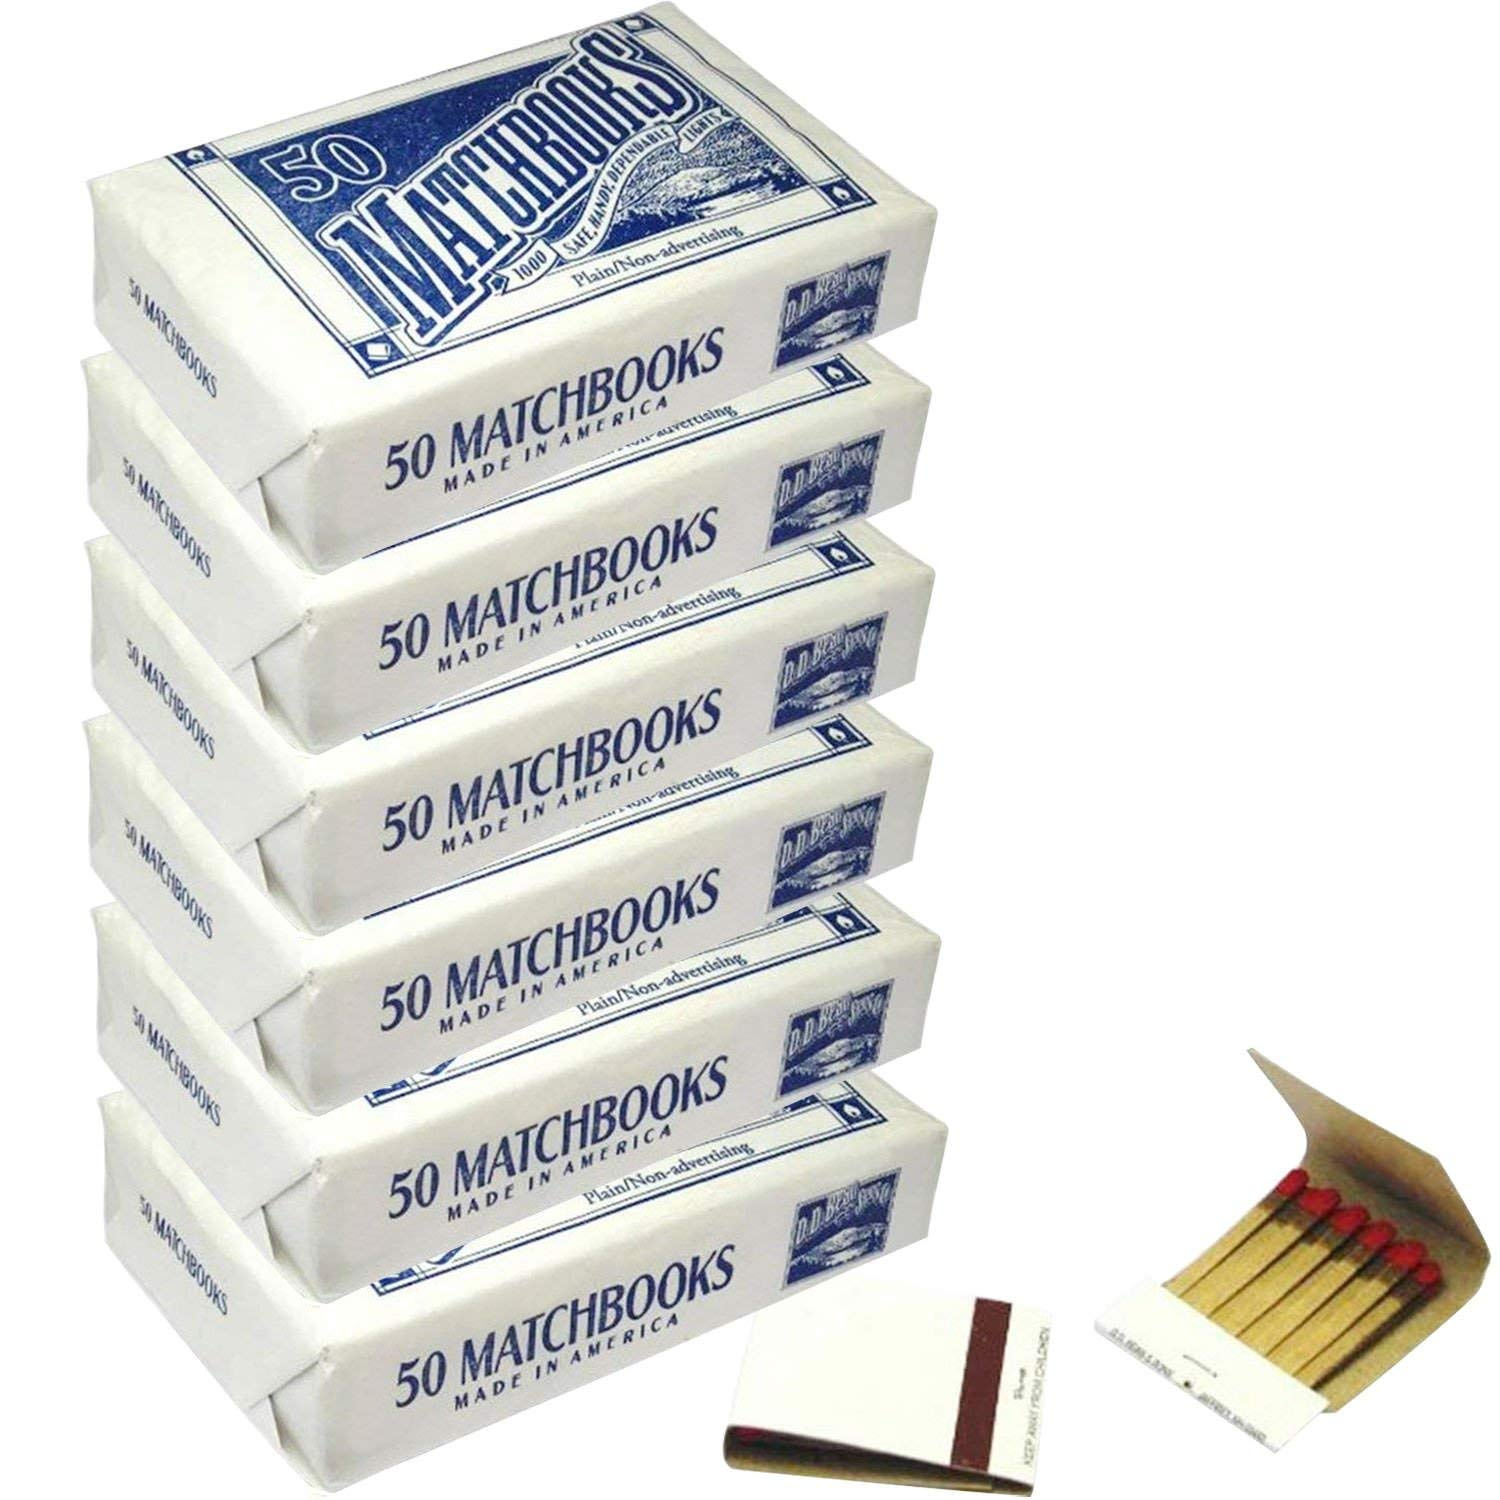 6 Boxes - Plain White Matches Matchbooks for Wedding Birthday Wholesale by ZigarreLicht (Image #1)